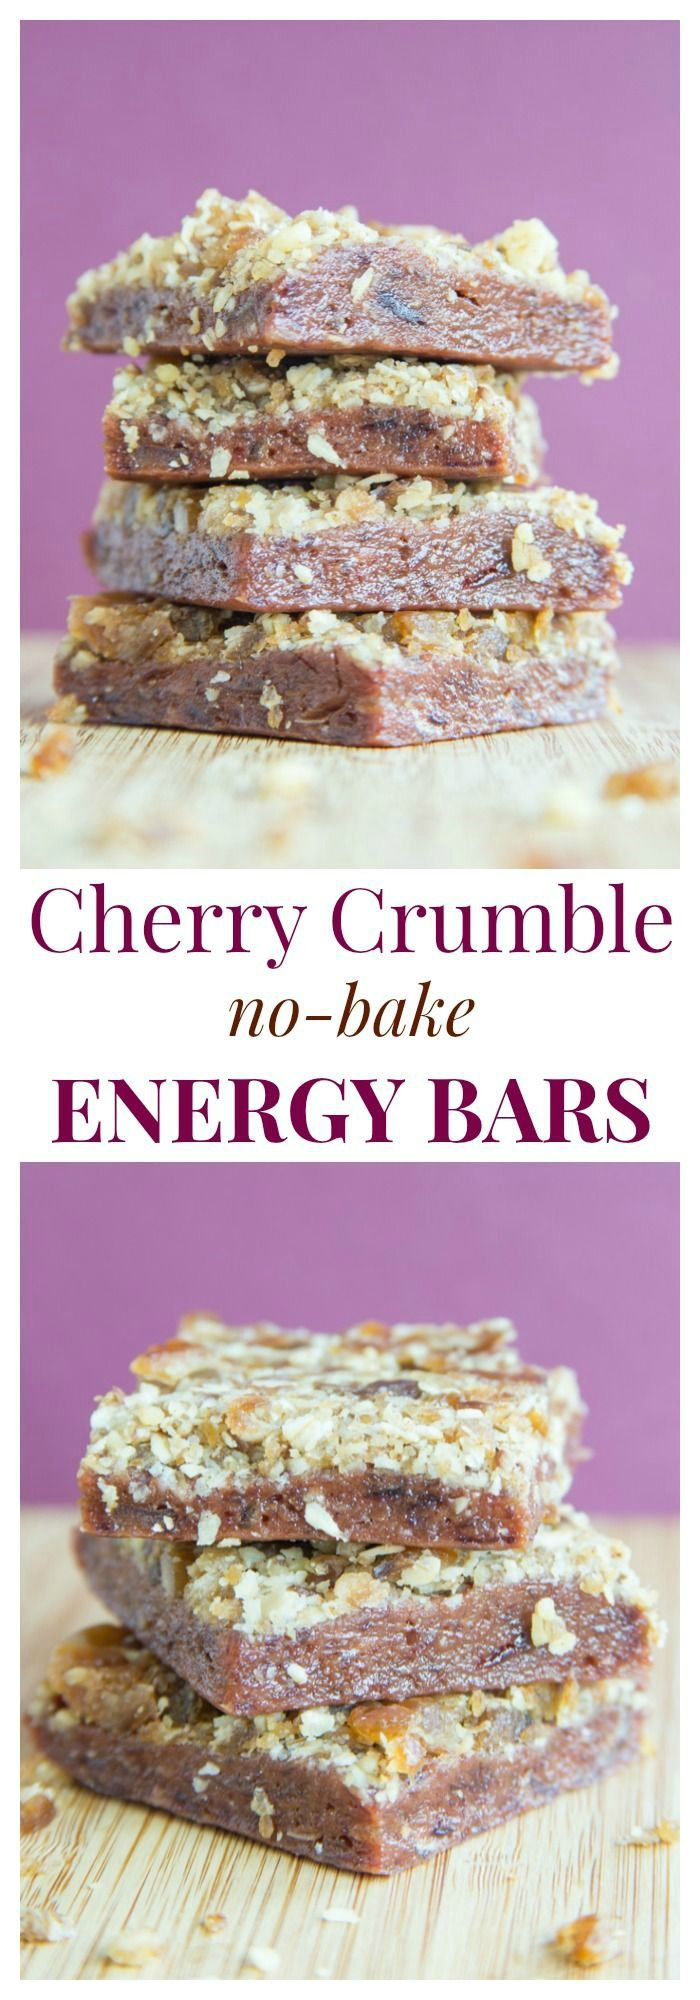 Cherry Crumble No Bake Energy Bars - a healthy snack bar with a sweet cherry layer and a streusel crumb topping. | cupcakesandkalech... | gluten free, vegan recipe